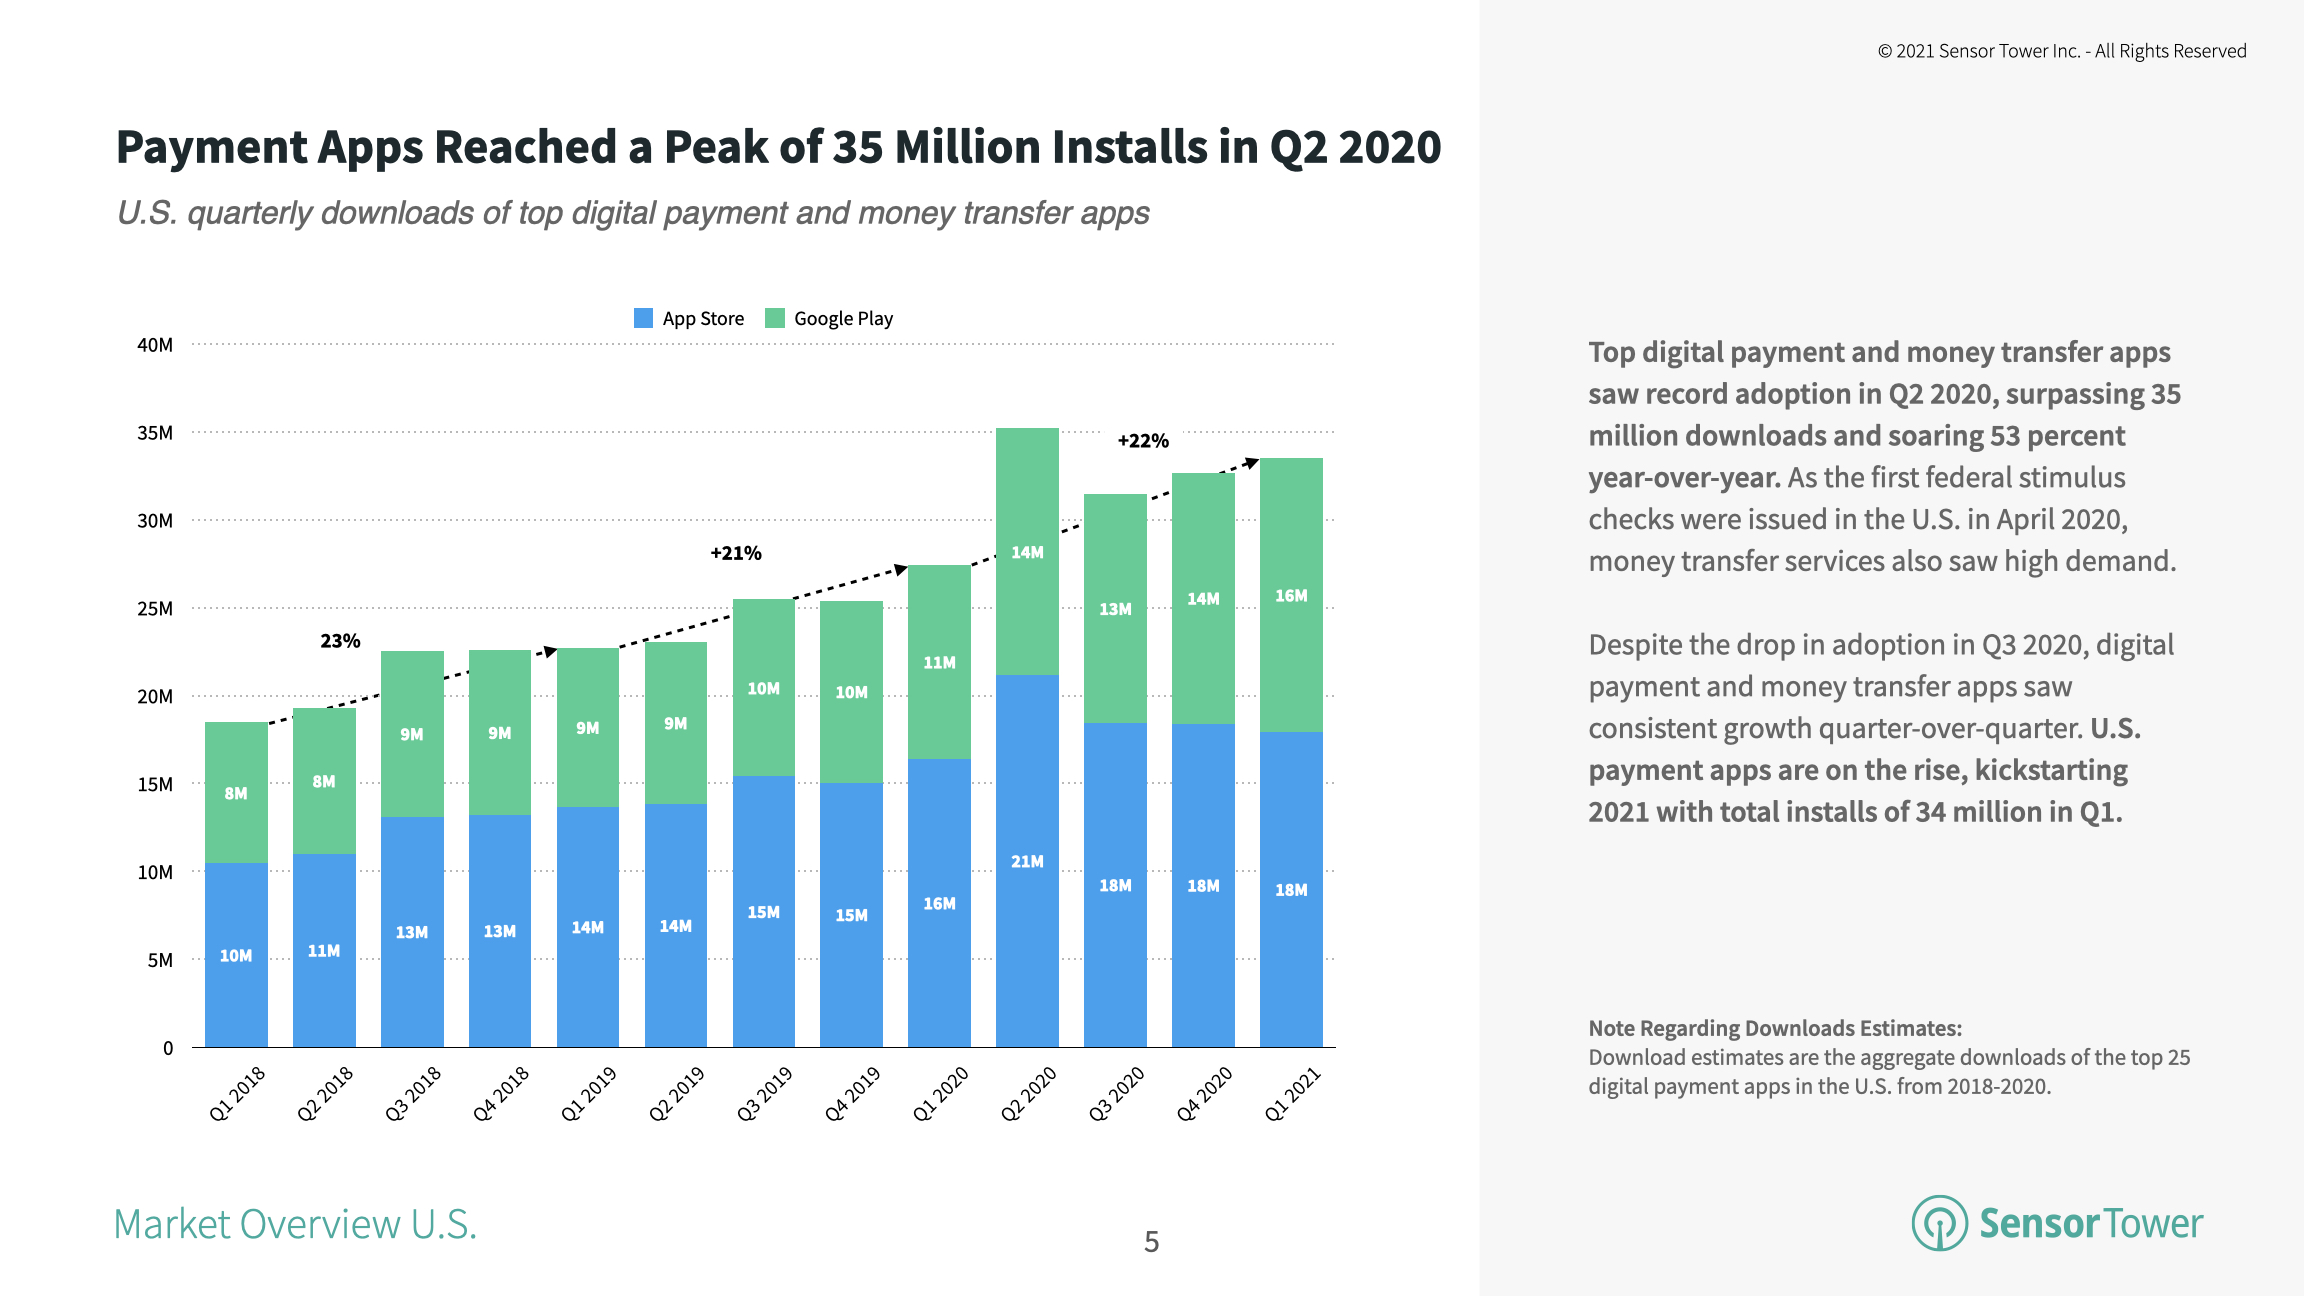 The top digital payment and money transfer apps in the U.S. saw record installs in 2Q20 when they reached more than 35 million.